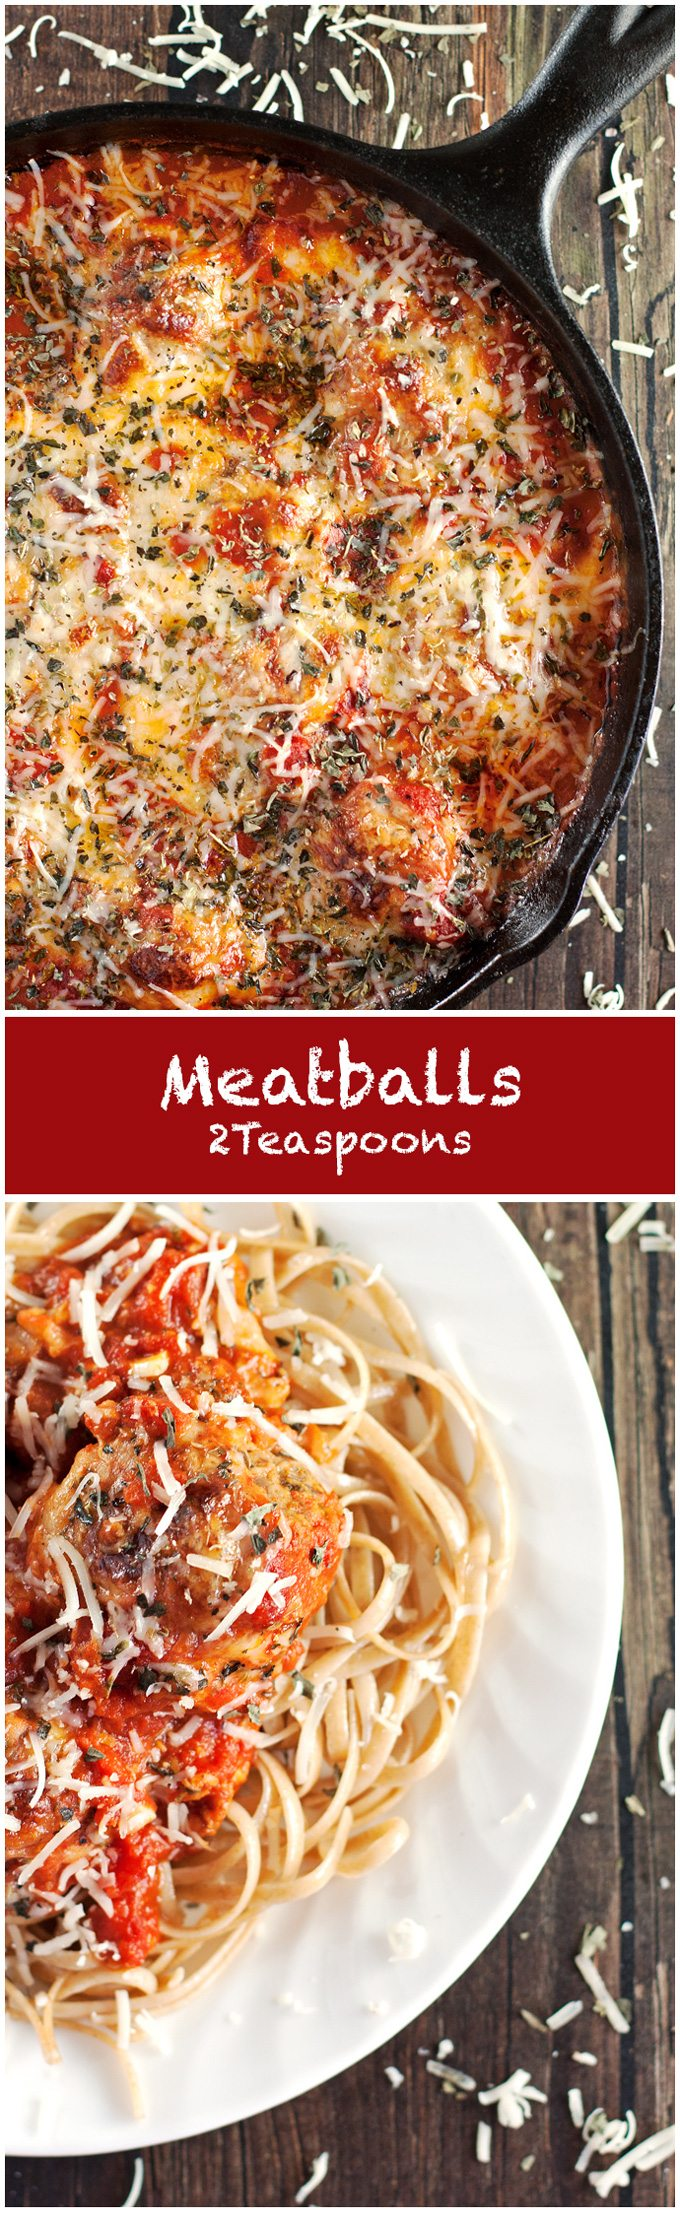 Meatballs covered in homemade tomato sauce and smothered with melted cheese. We LOVE this hearty, meaty, tomato-y, cheesy, awesome, classic dinner recipe - 2teaspoons.com